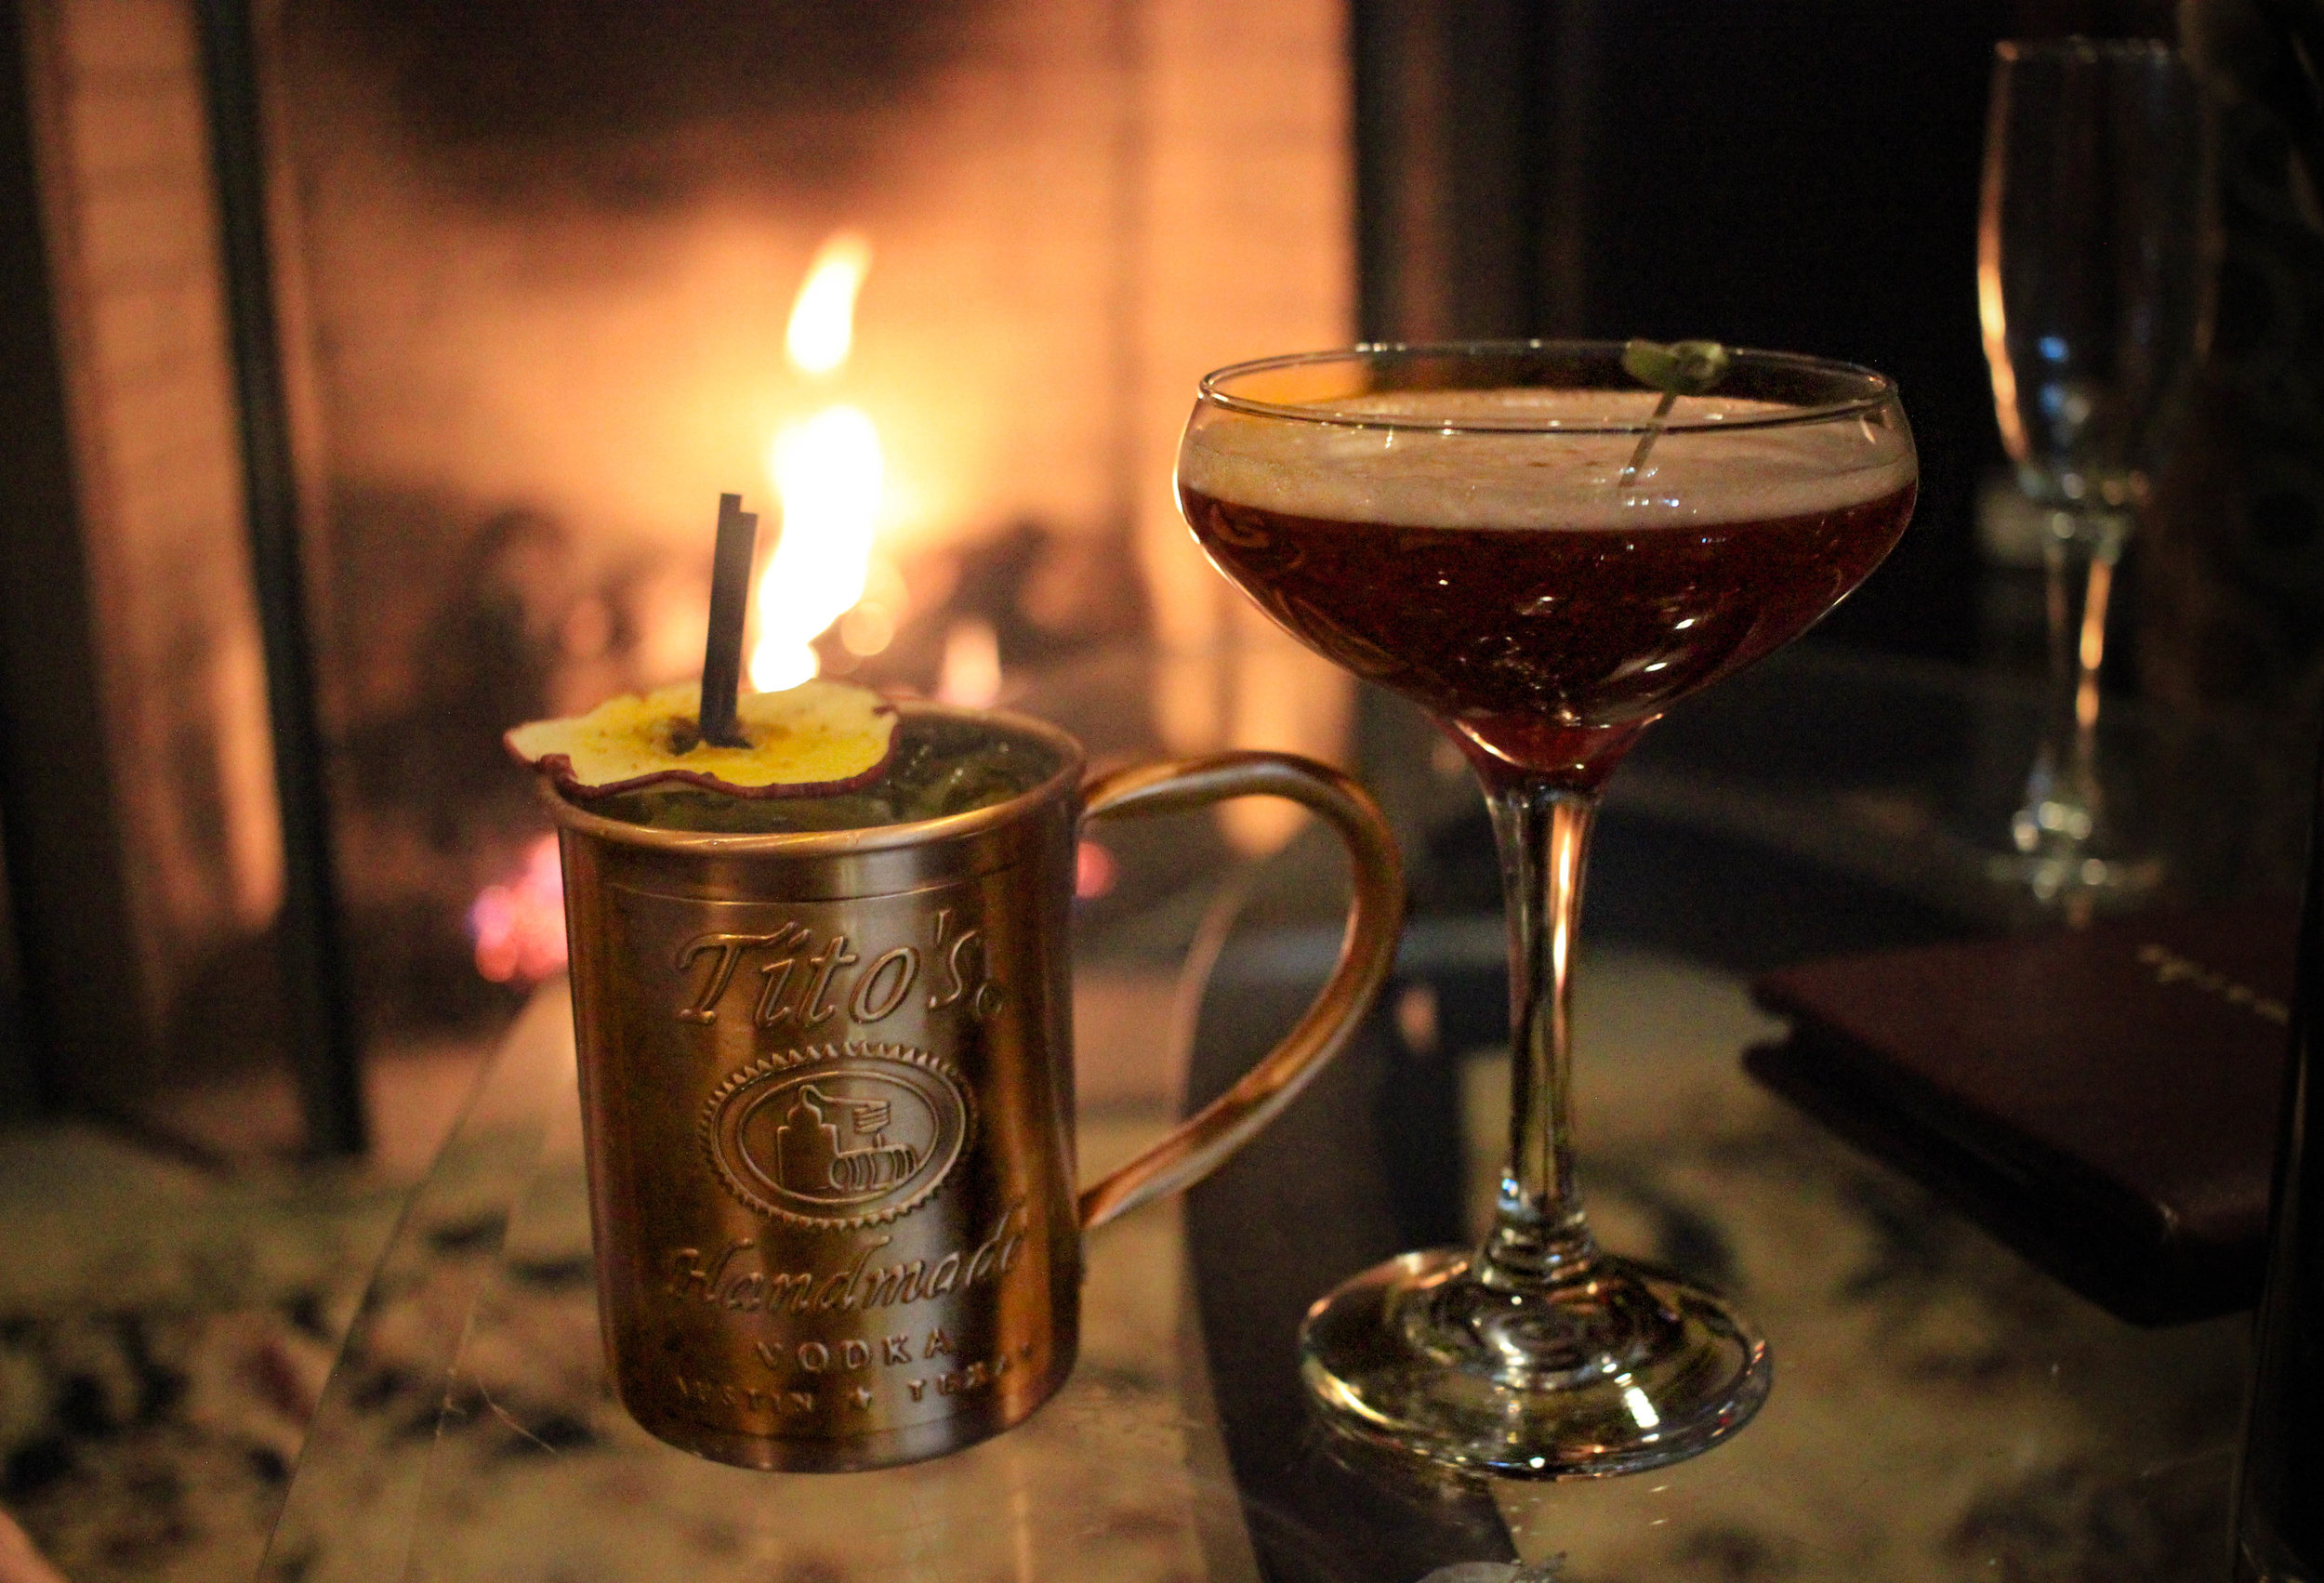 Left: The Autumn Mule; Tito's vodka infused with clove and ginger, peach puree, ginger beer. Right: The Sleepy Hollow; Chai tea infused brandy, cranberry liqueur, pumpkin spiced agave nectar, Sparkling Wine.